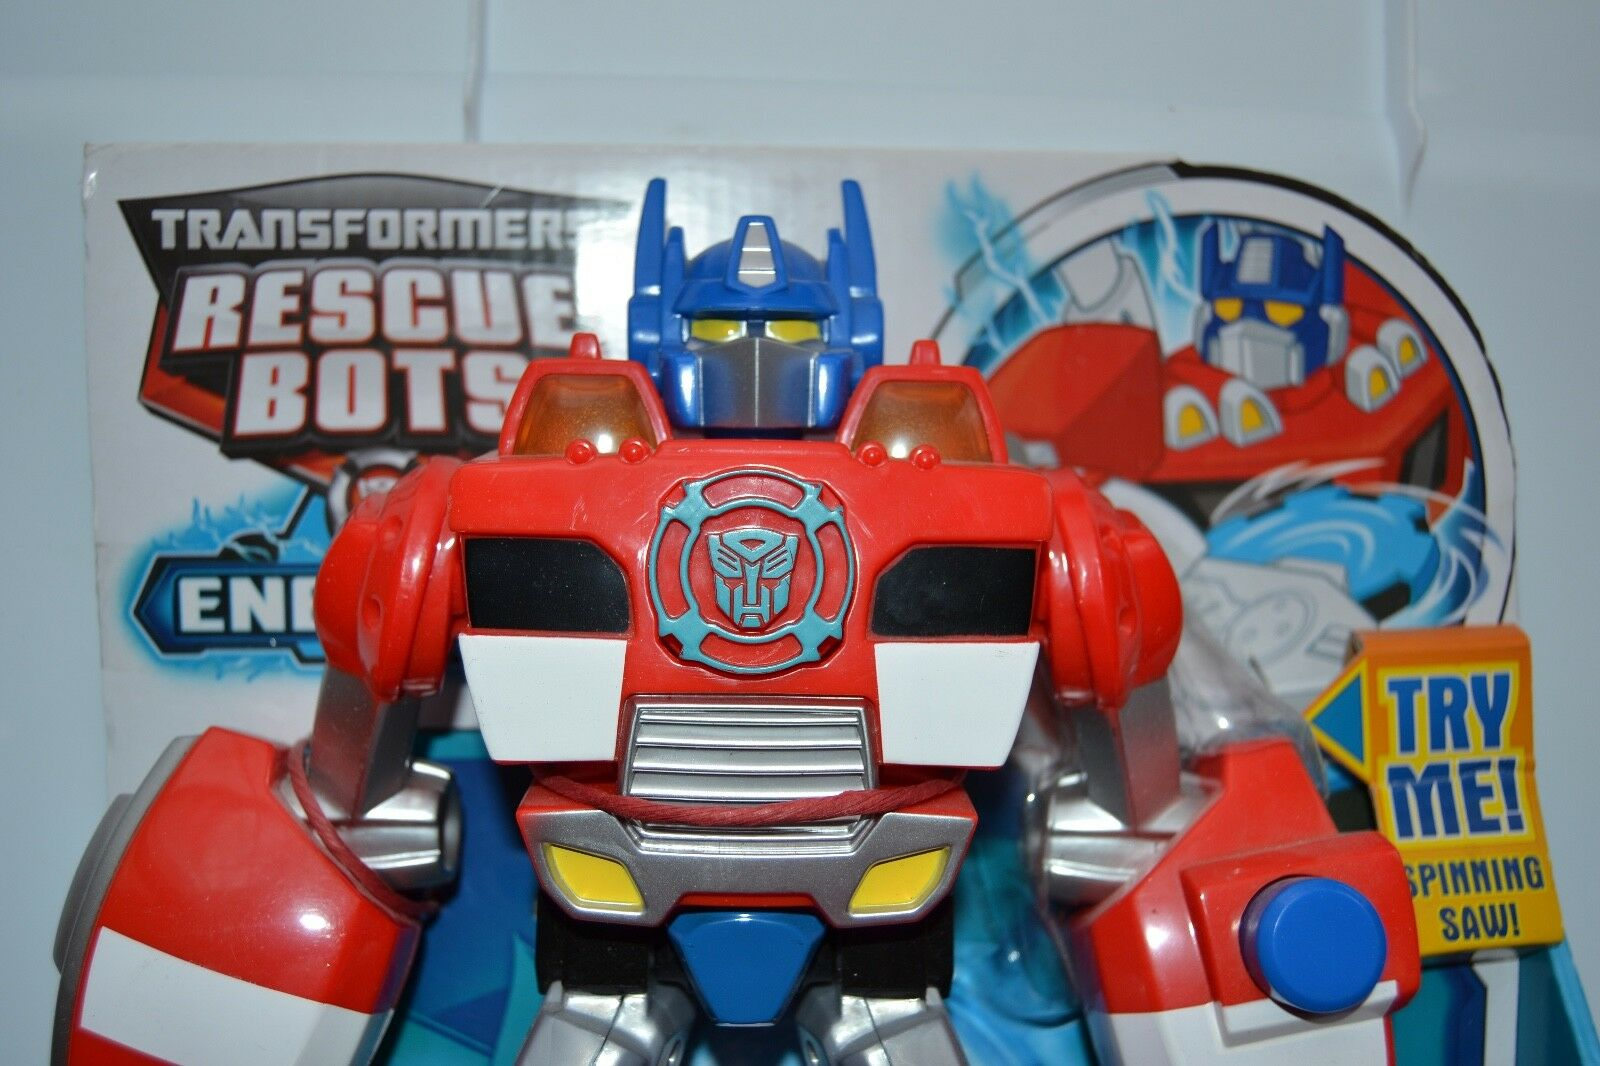 Transformers rescue bots Optimus prime electronic Optimus prime energize new